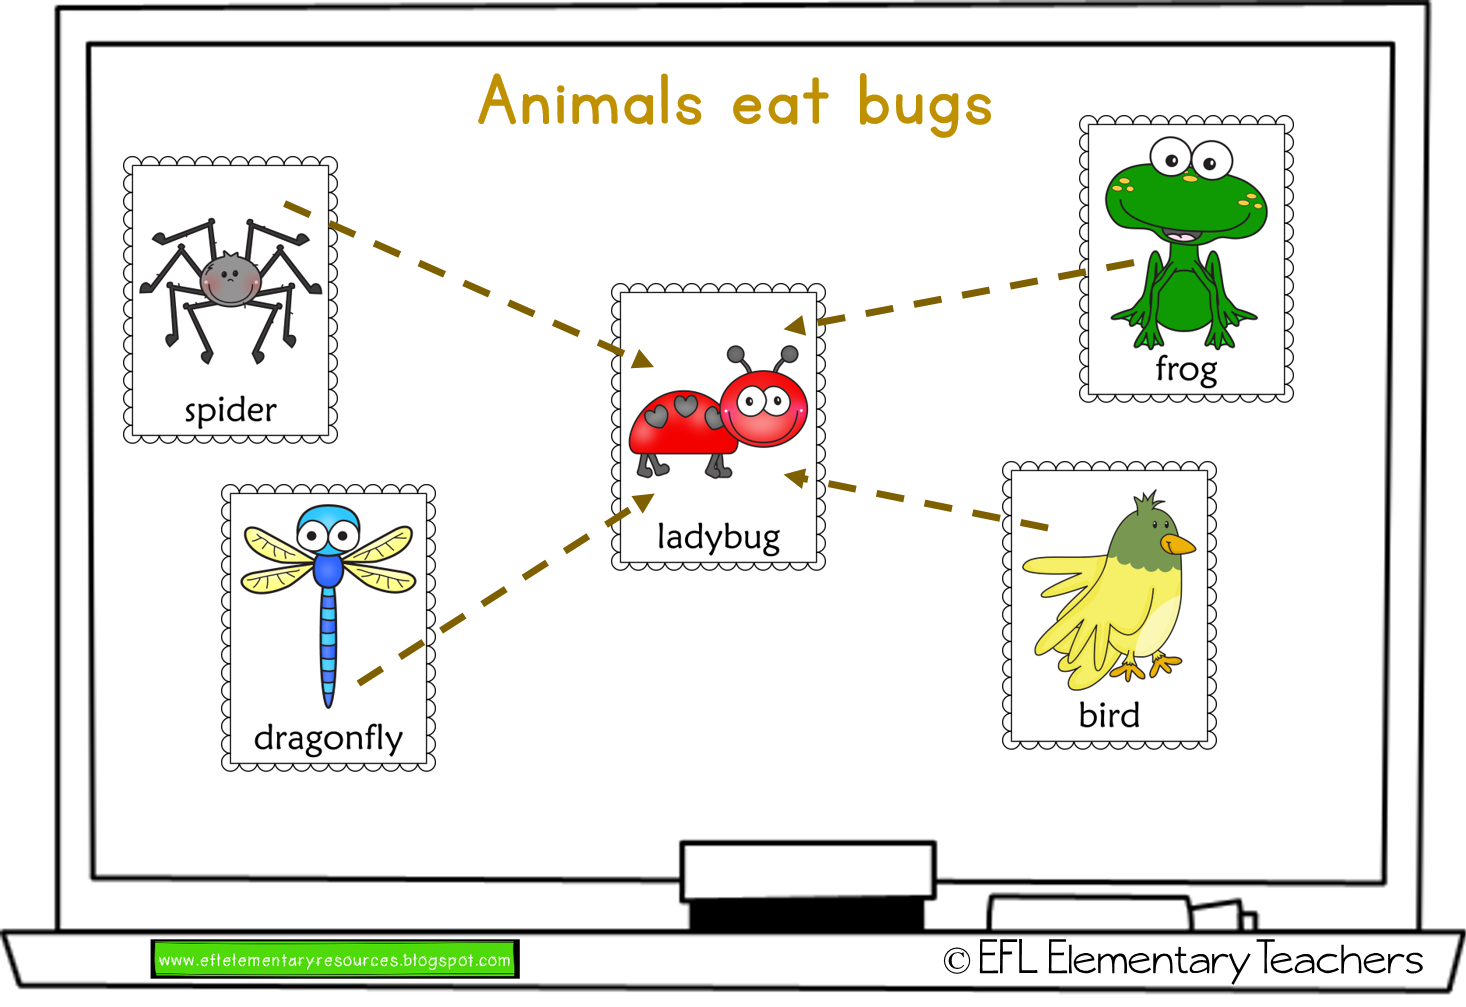 Efl Elementary Teachers Insects Unit For Elementary Esl